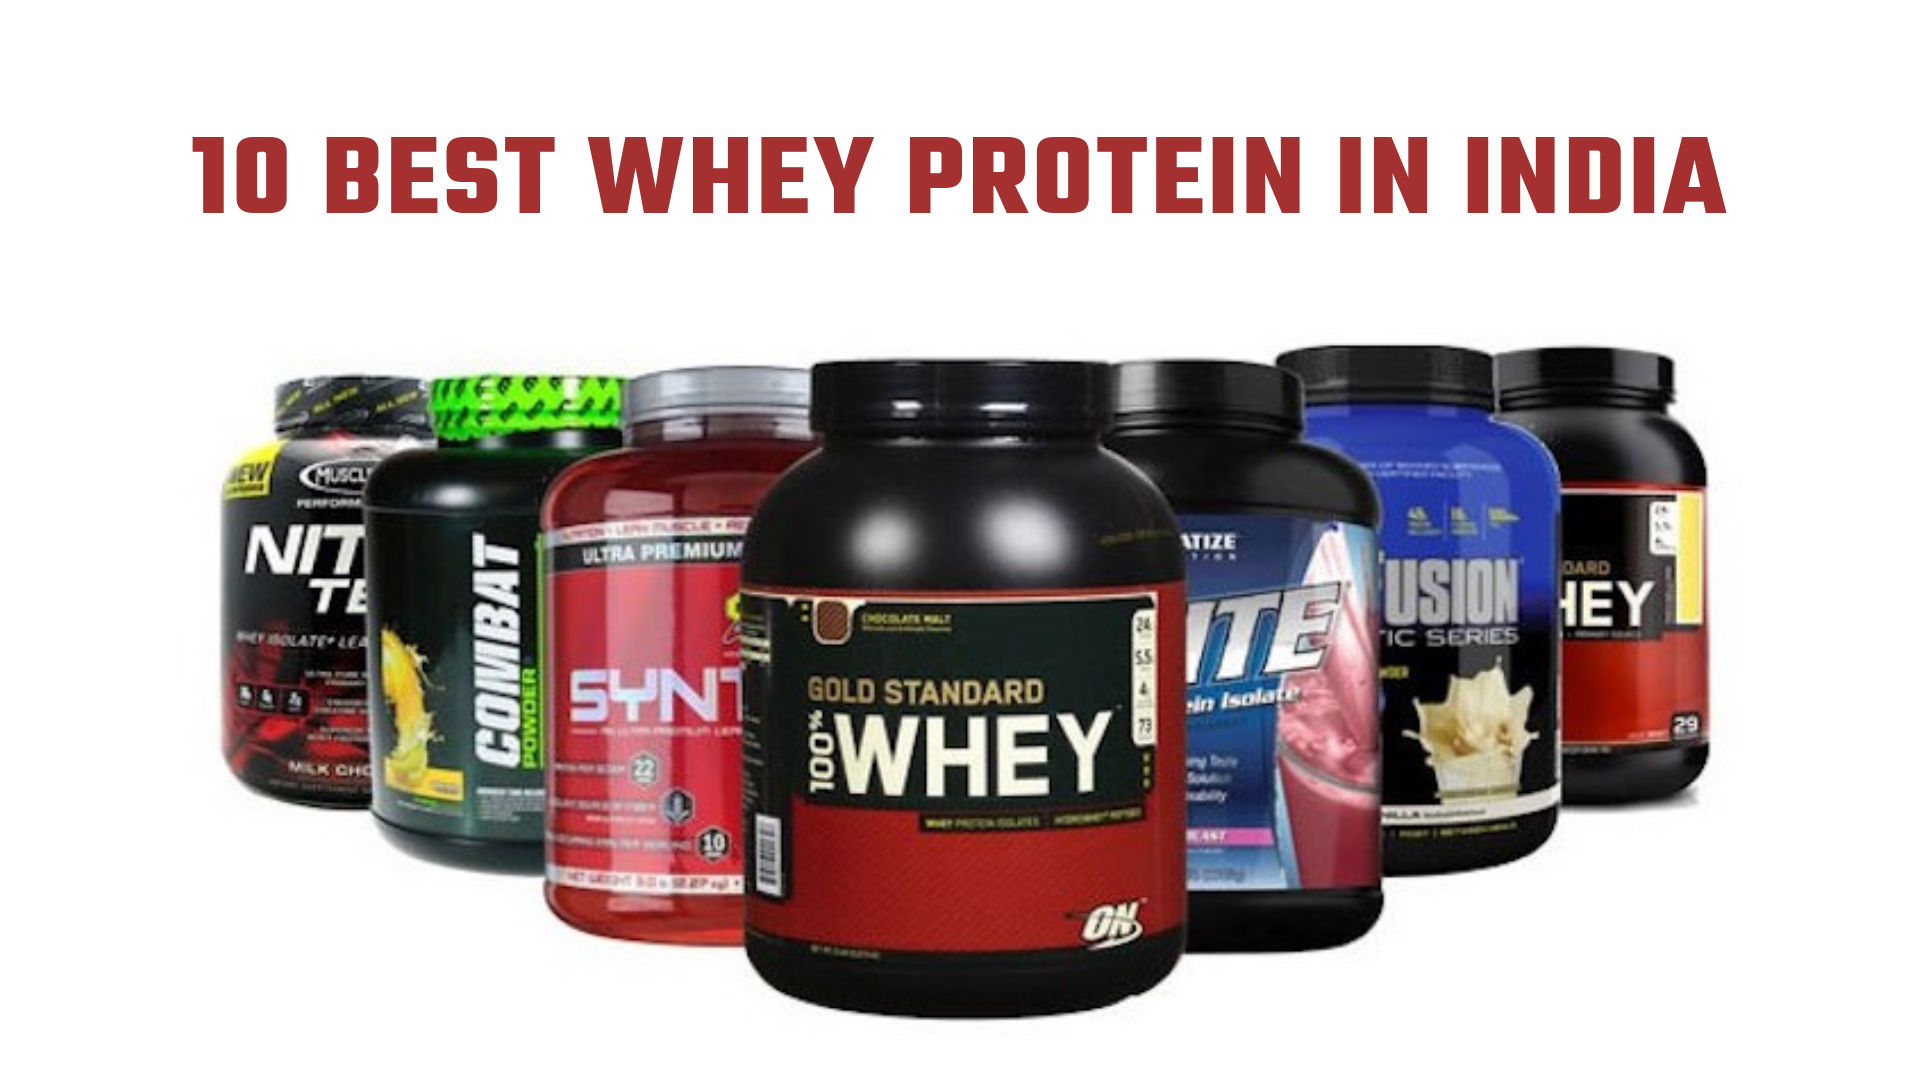 10-best-whey-protein-in-India